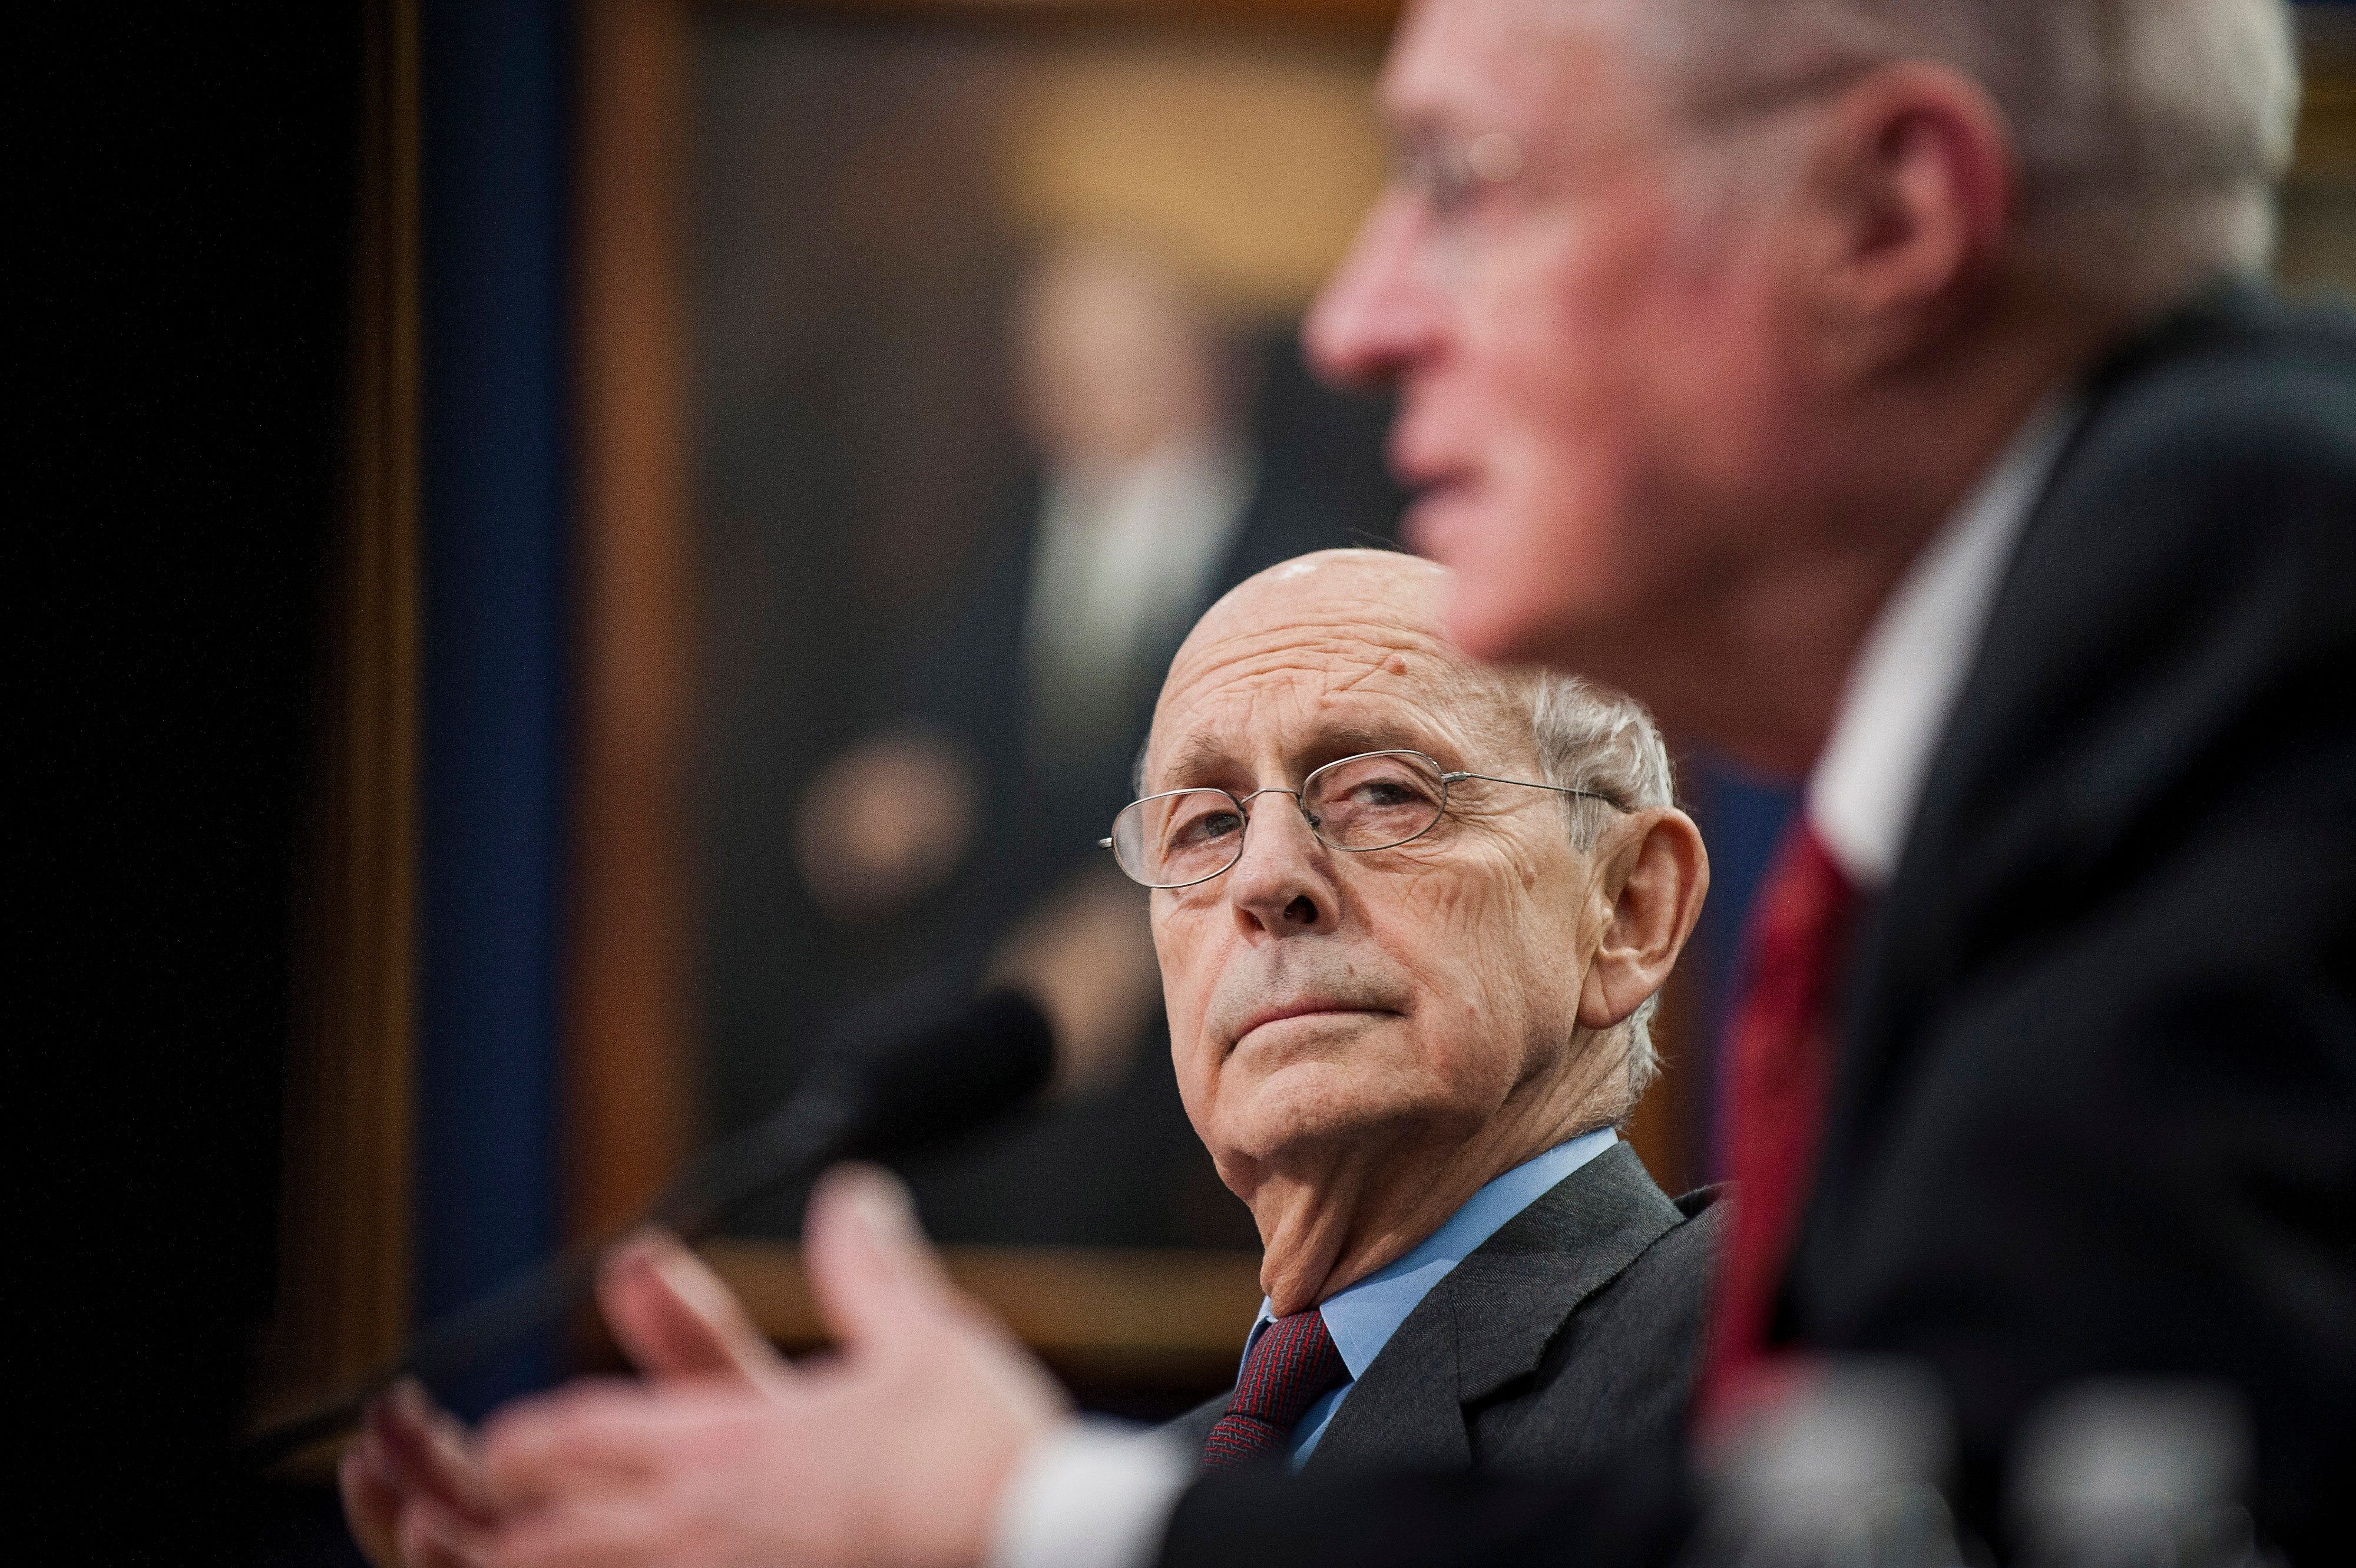 U.S. Supreme Court Justices Stephen Breyer, left, and Anthony Kennedy testify during a Financial Services and General Government Subcommittee in Washington, D.C., U.S., on Monday, March 23, 2015. Sprinting toward their spring recess, the House and Senate will separately consider budget blueprints, perhaps leading to the first joint congressional budget in six years. Photographer: Pete Marovich/Bloomberg via Getty Images